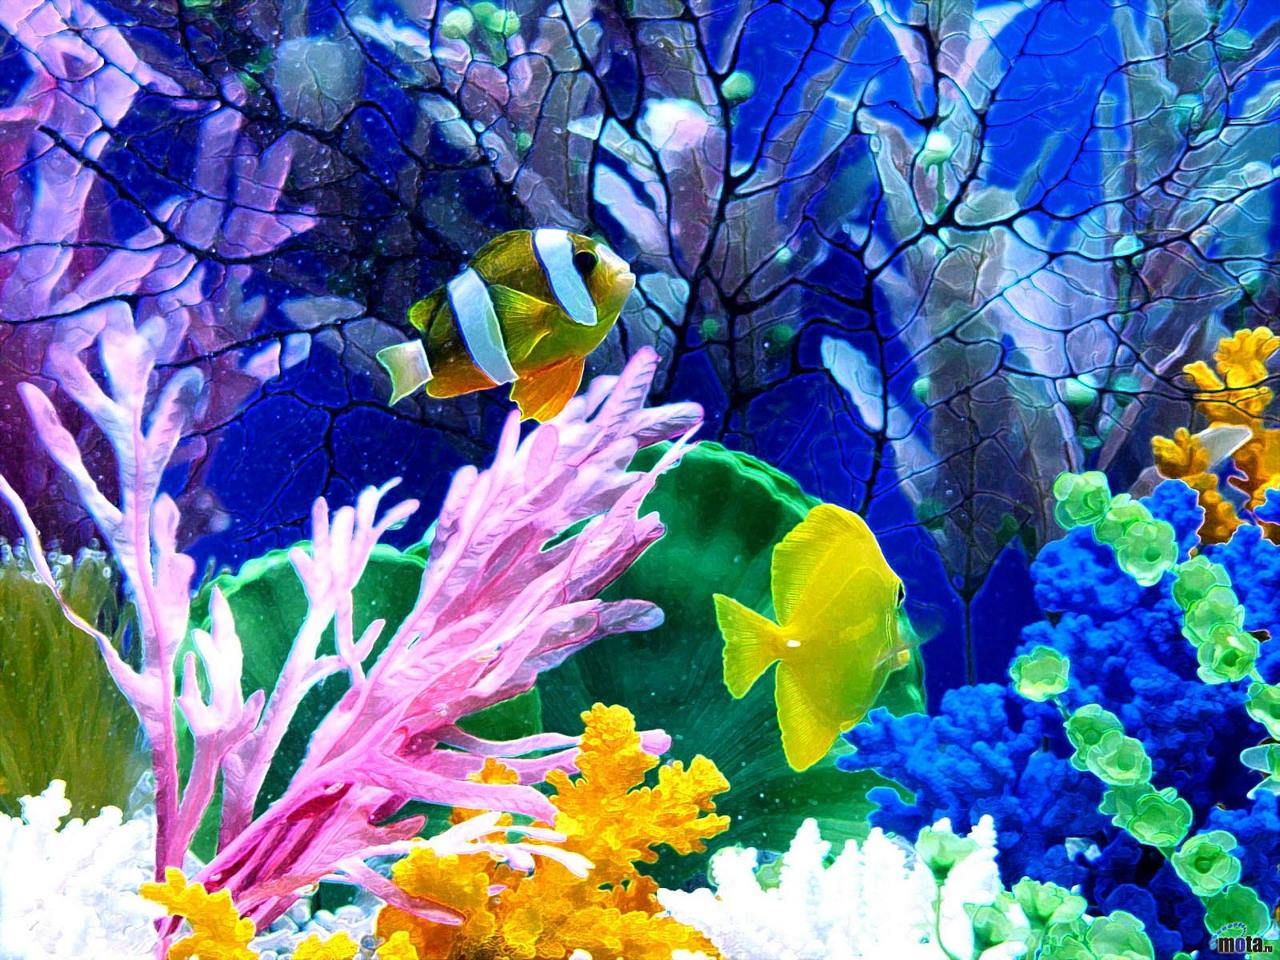 Aquarium Hd Wallpaper Wallpaper Amazing Wallpapers